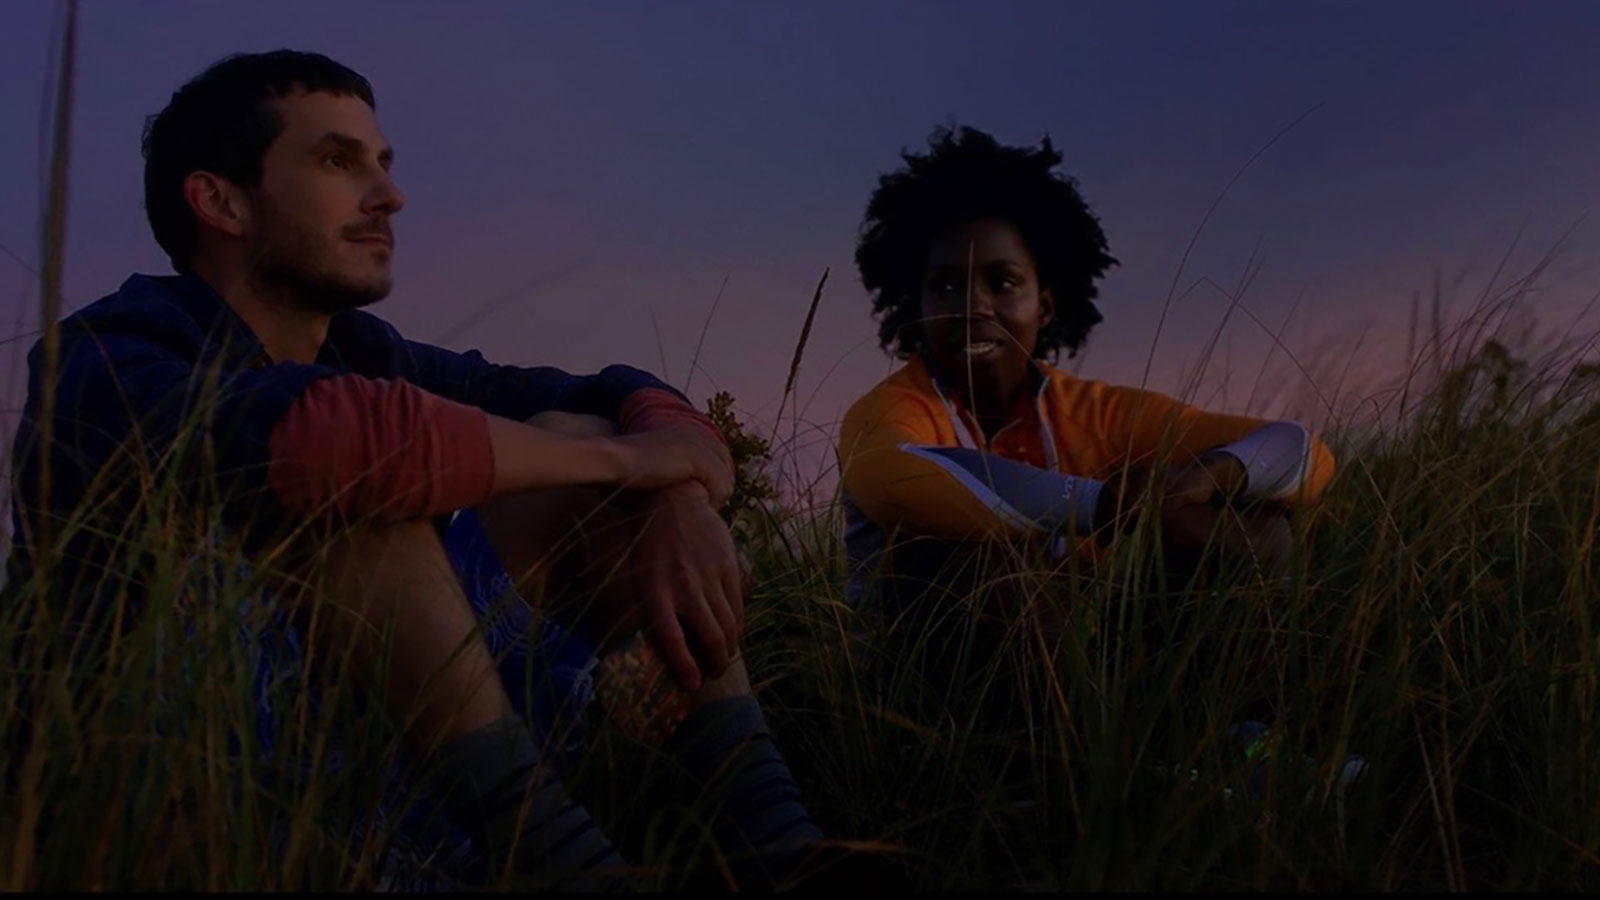 Tate Ellington (ALex) and Adepero Oduye (The Master of the Wind)